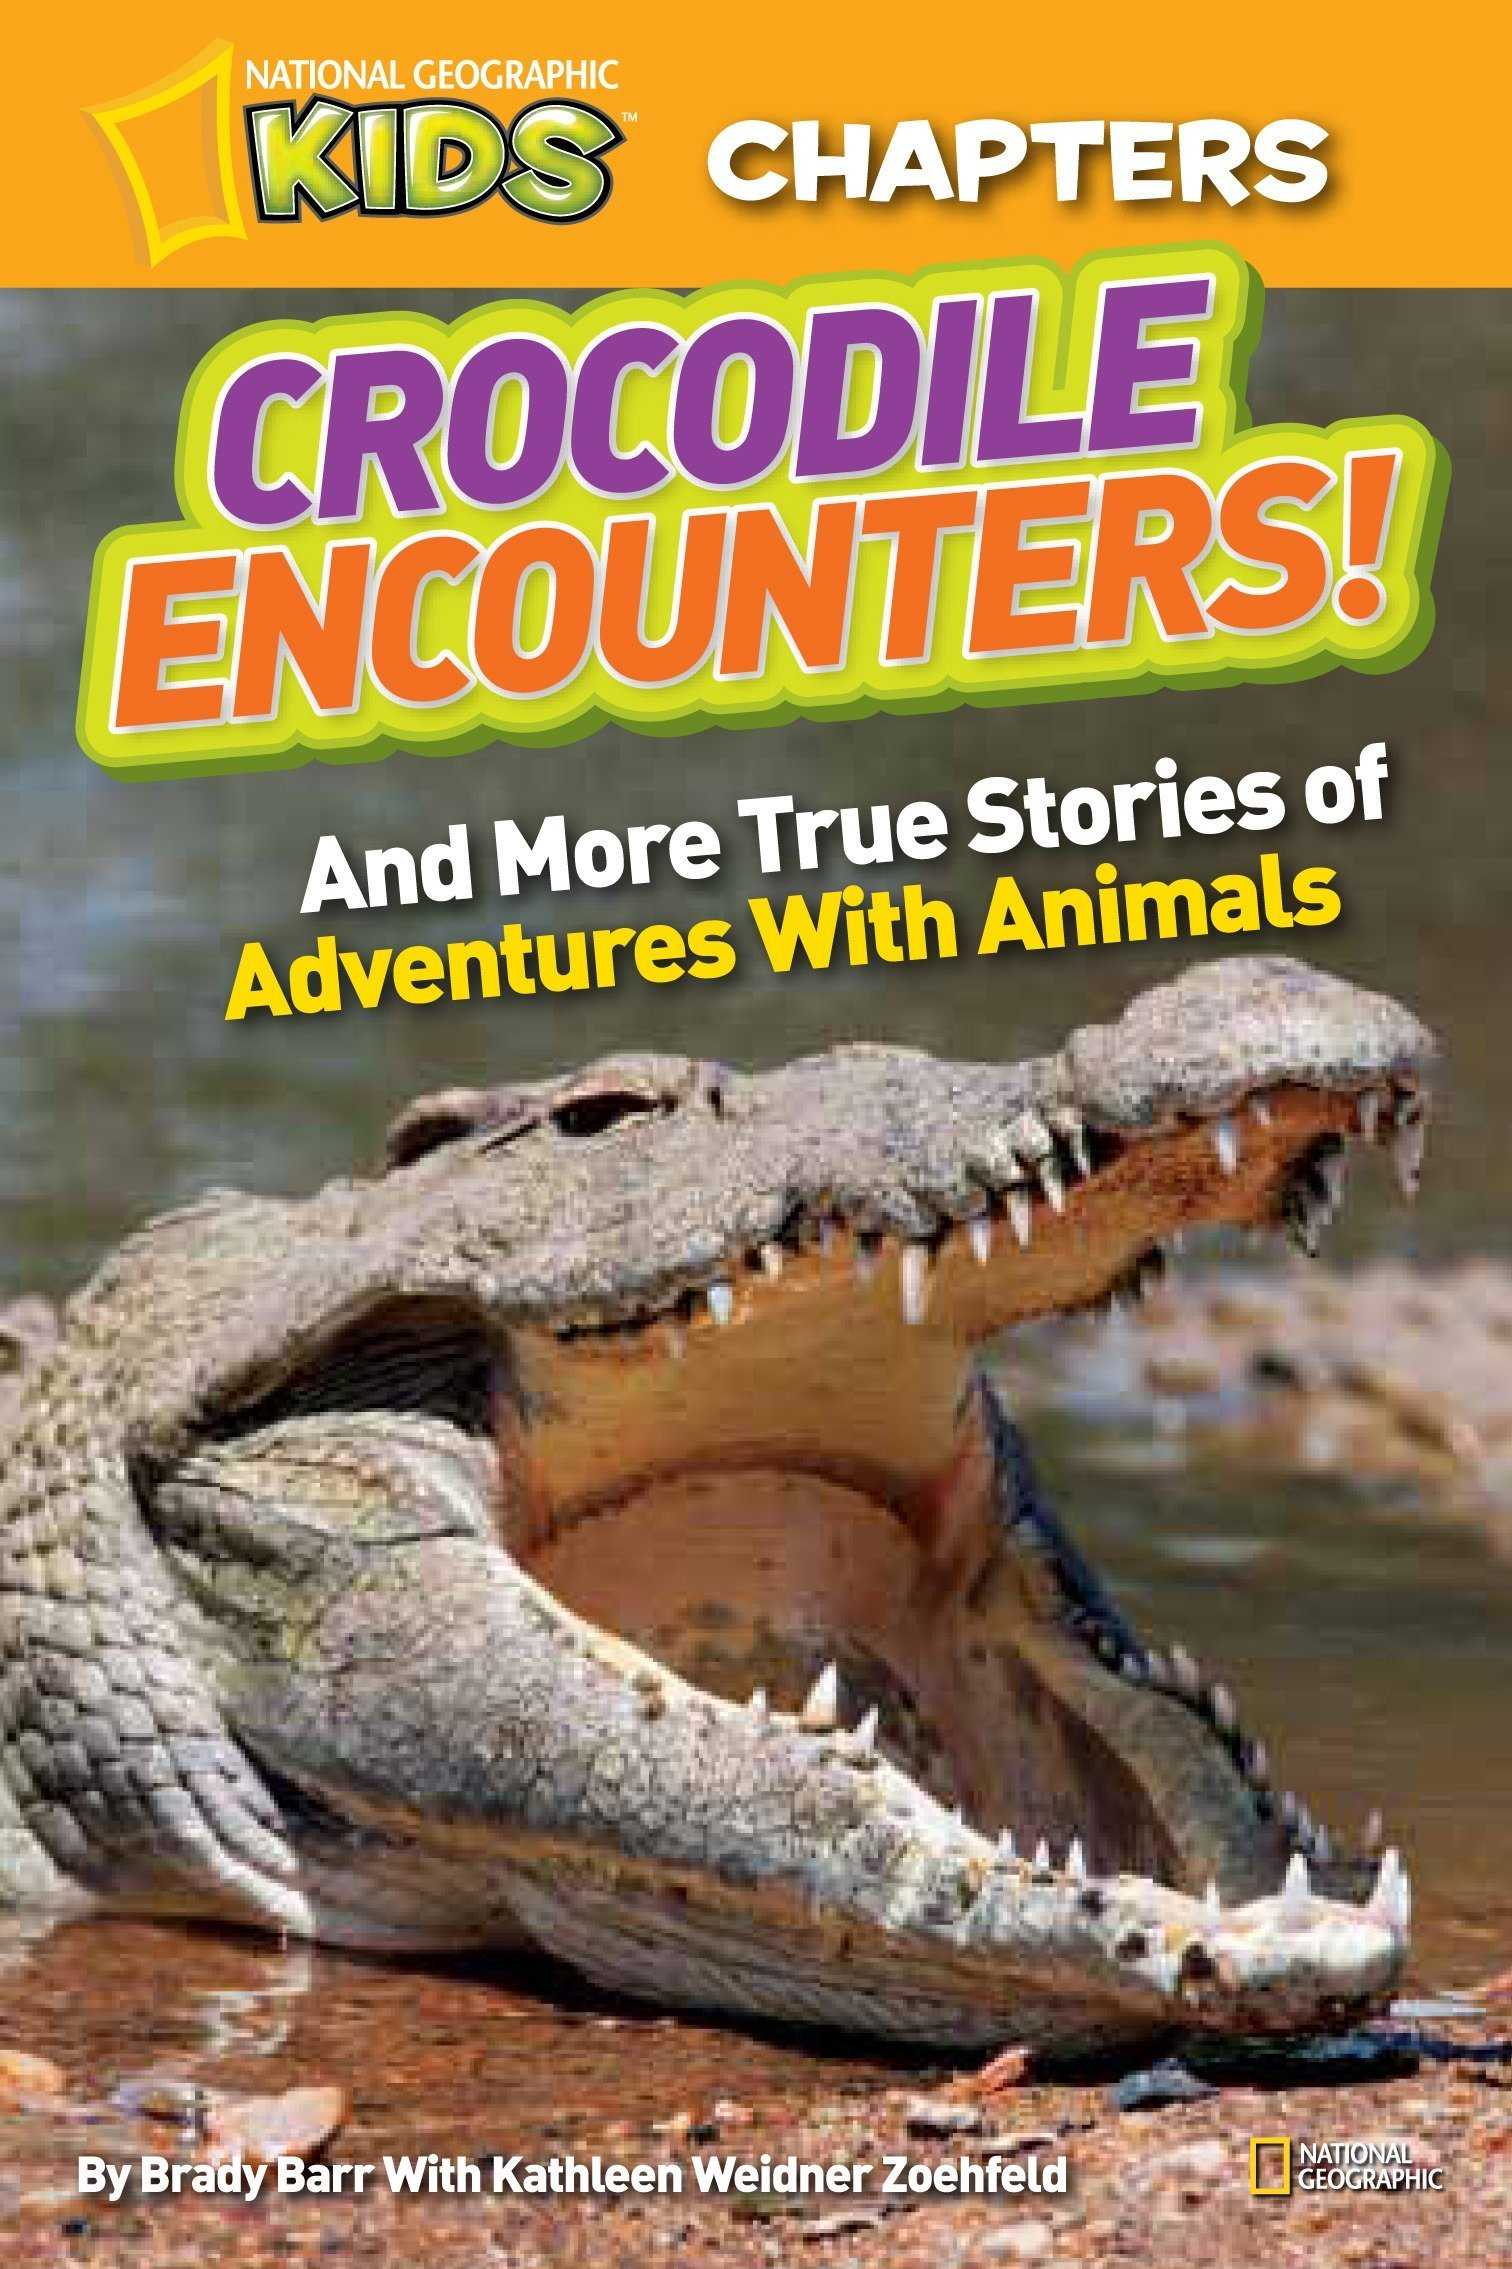 National Geographic Kids Chapters: Crocodile Encounters: and More True Stories of Adventures with Animals (NGK Chapters) pdf epub